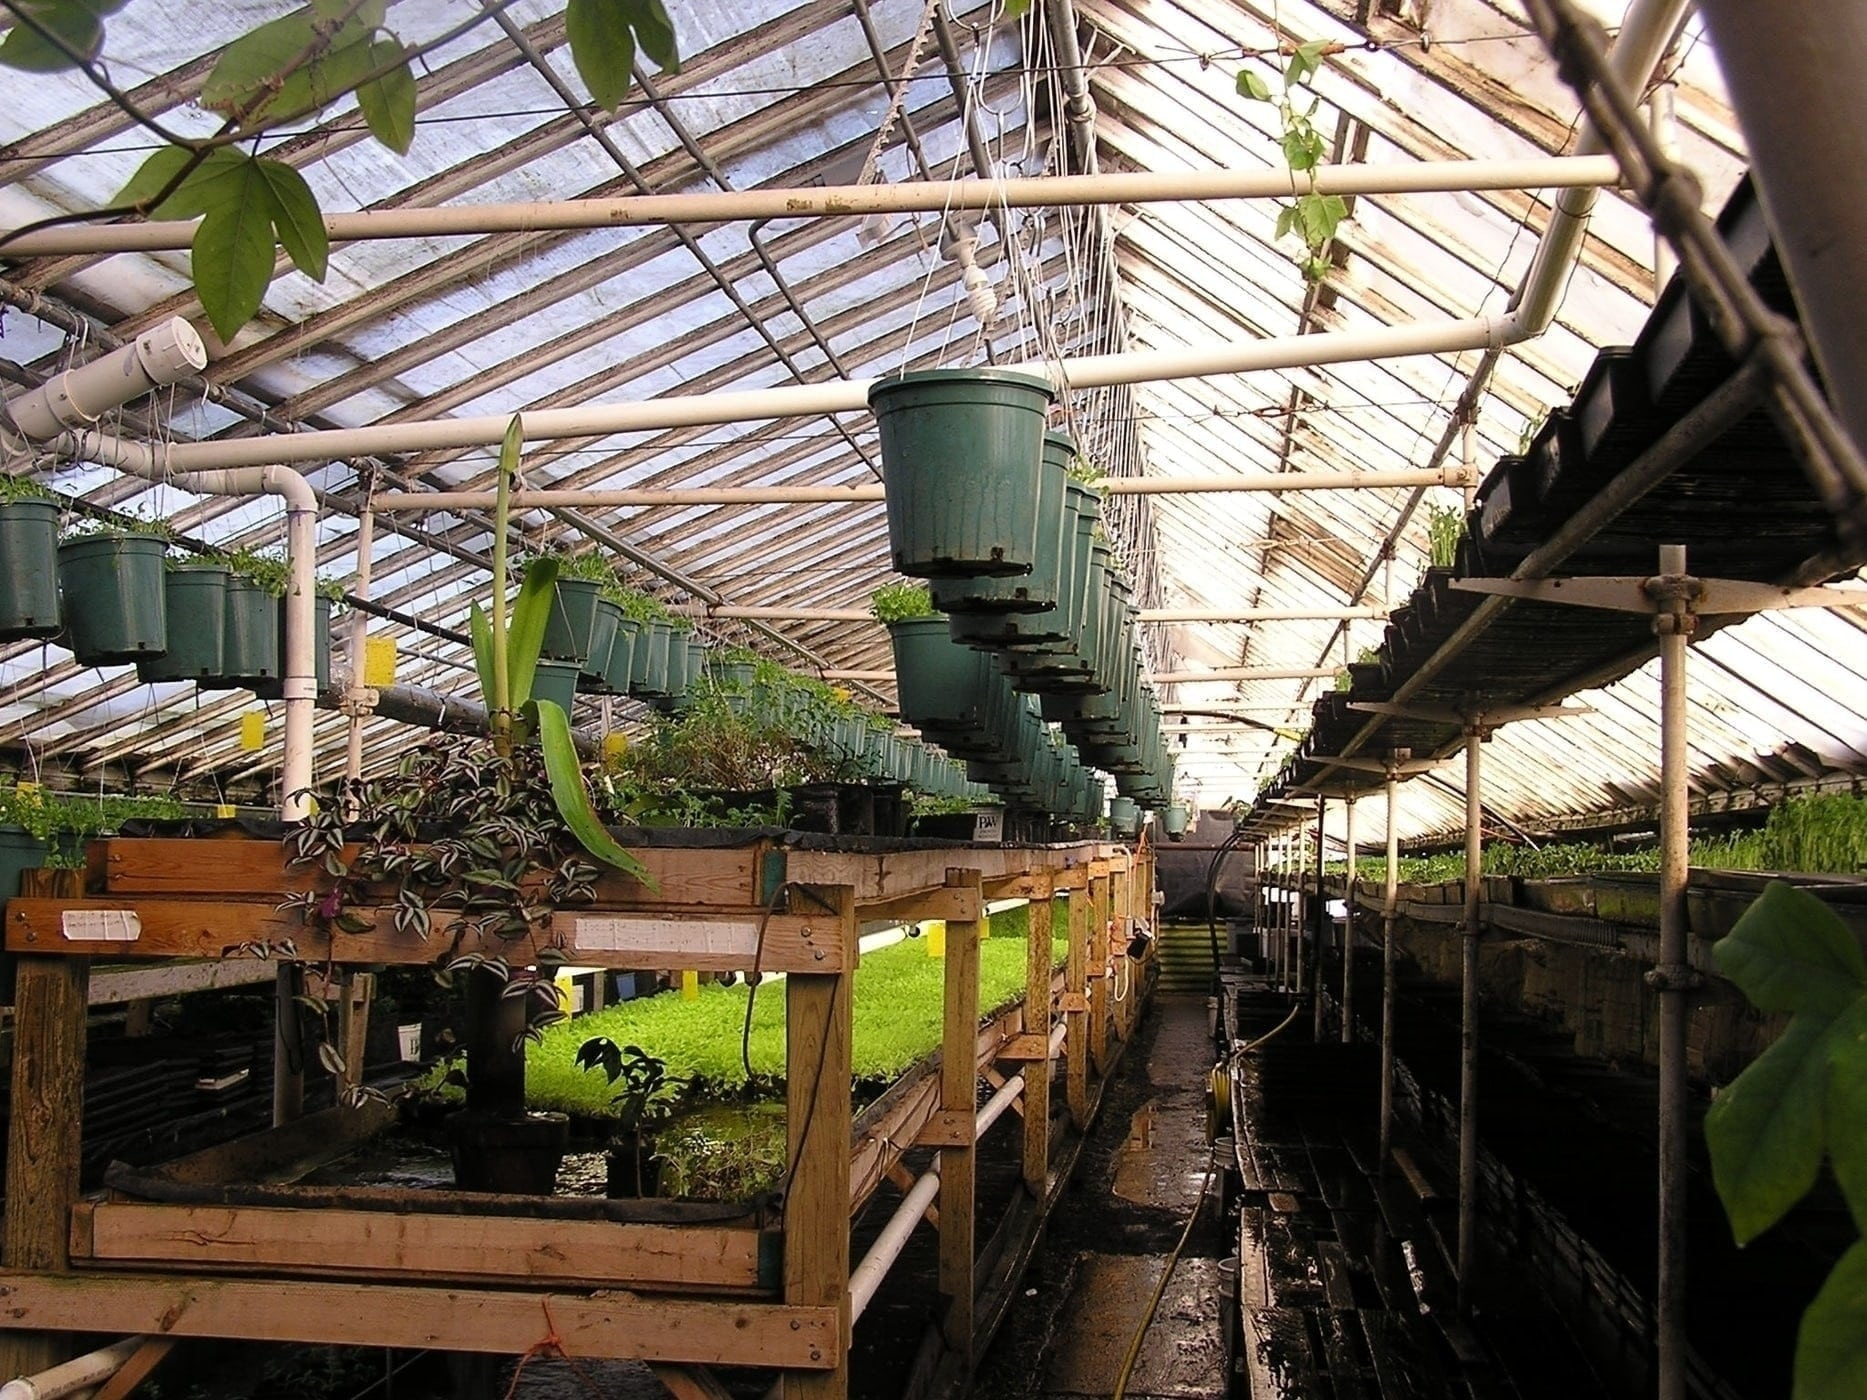 One of the greenhouses of Growing Power, a Milwaukee urban farm run by MacArthur Genius Grant recipient Will Allen. Photo courtesy Flickr user crfsproject. Used in accordance with Creative Commons guidelines.